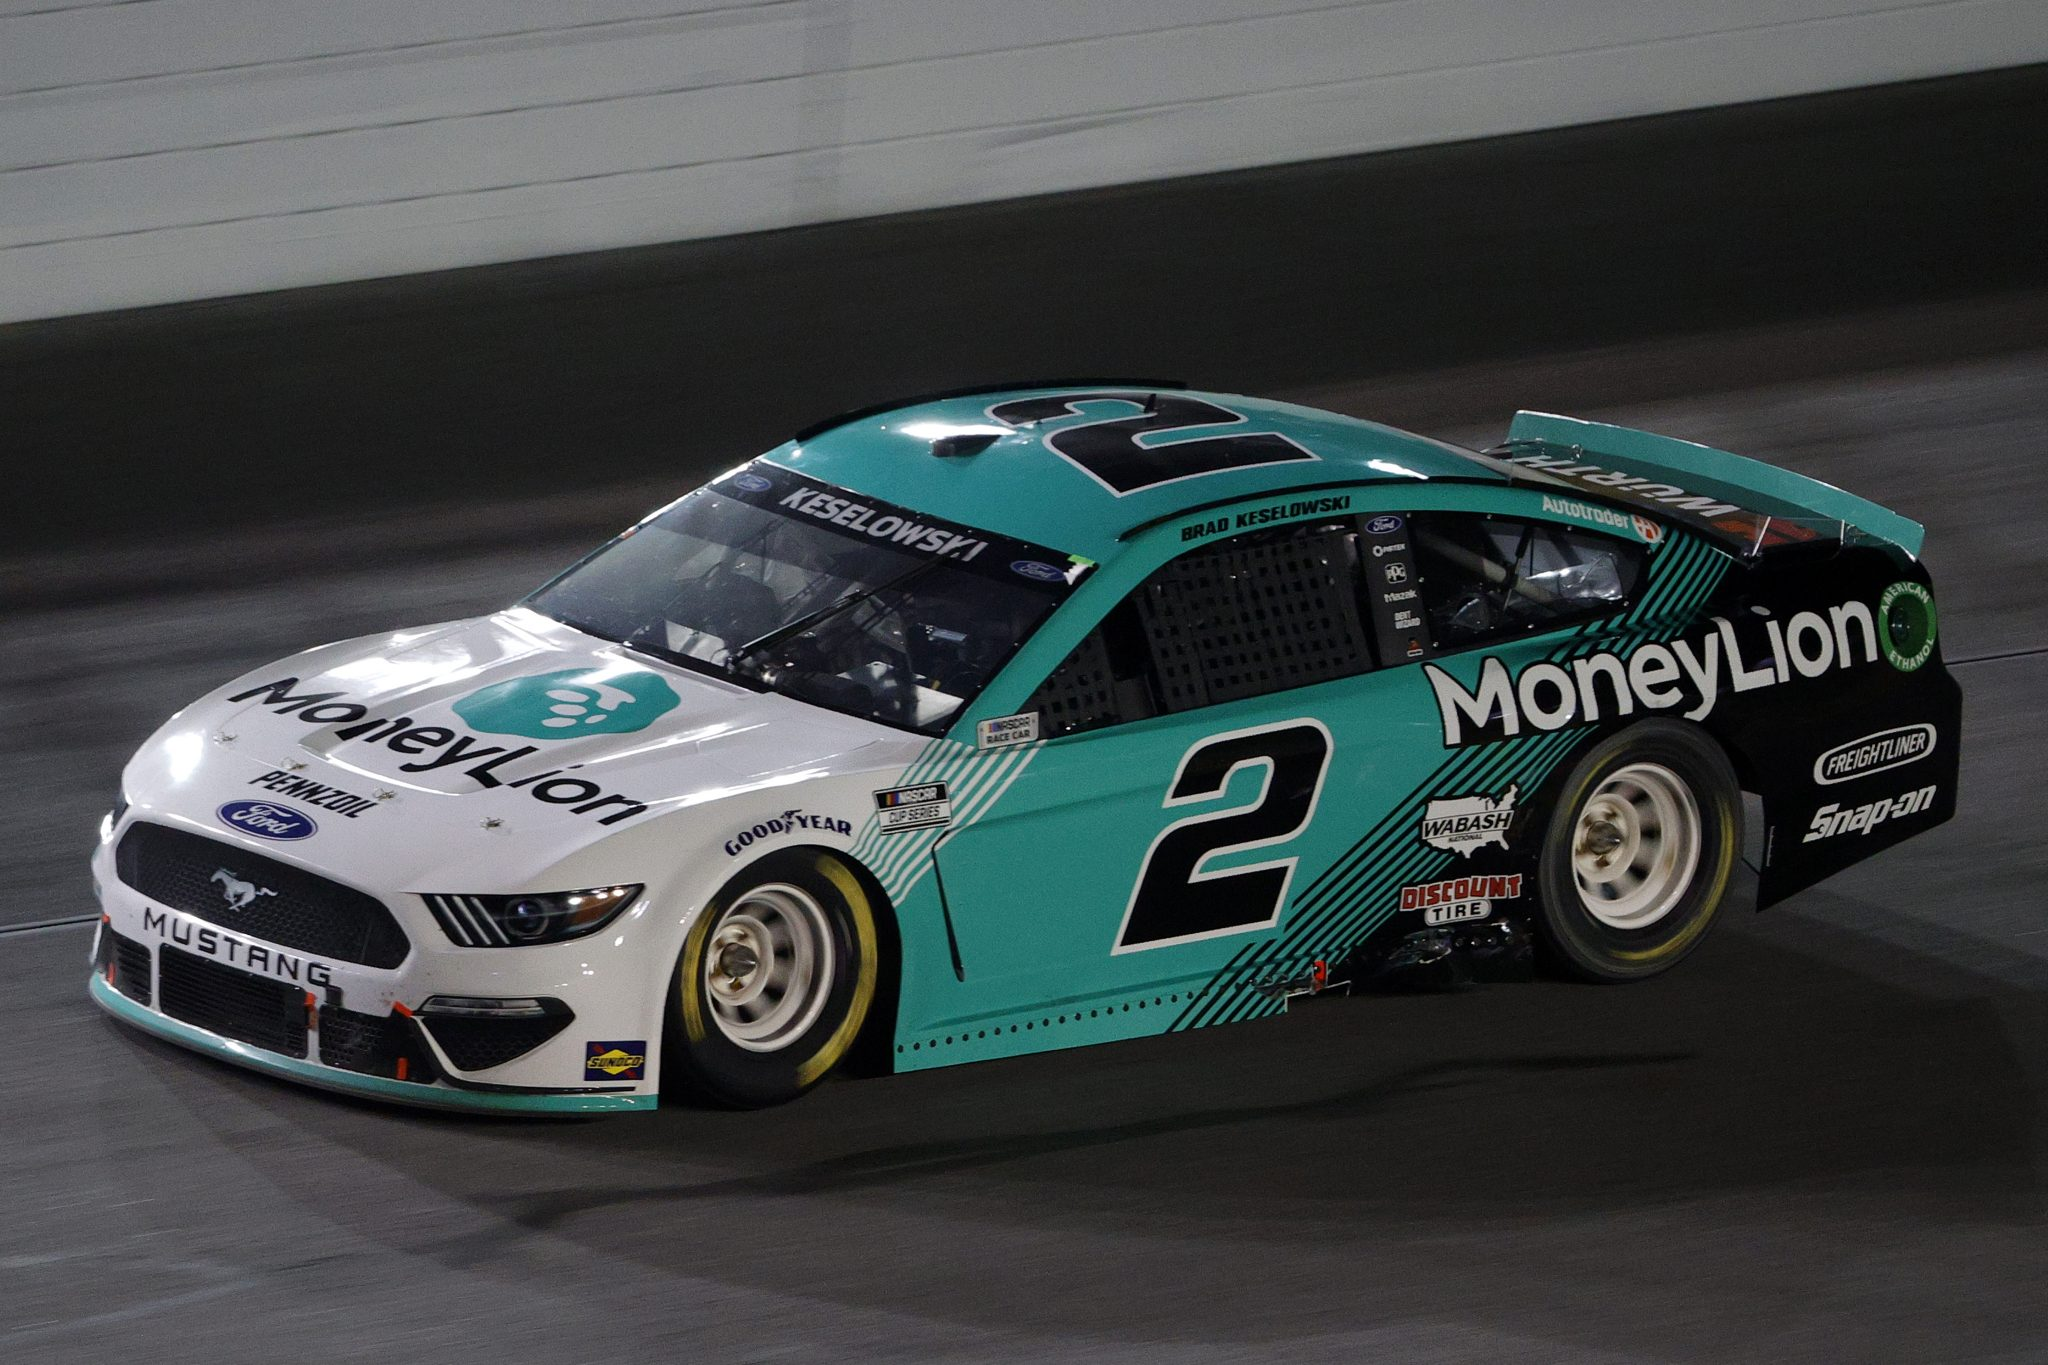 DAYTONA BEACH, FLORIDA - FEBRUARY 09: Brad Keselowski, driver of the #2 MoneyLion Ford, drives during the NASCAR Cup Series Busch Clash at Daytona at Daytona International Speedway on February 09, 2021 in Daytona Beach, Florida. (Photo by Chris Graythen/Getty Images) | Getty Images